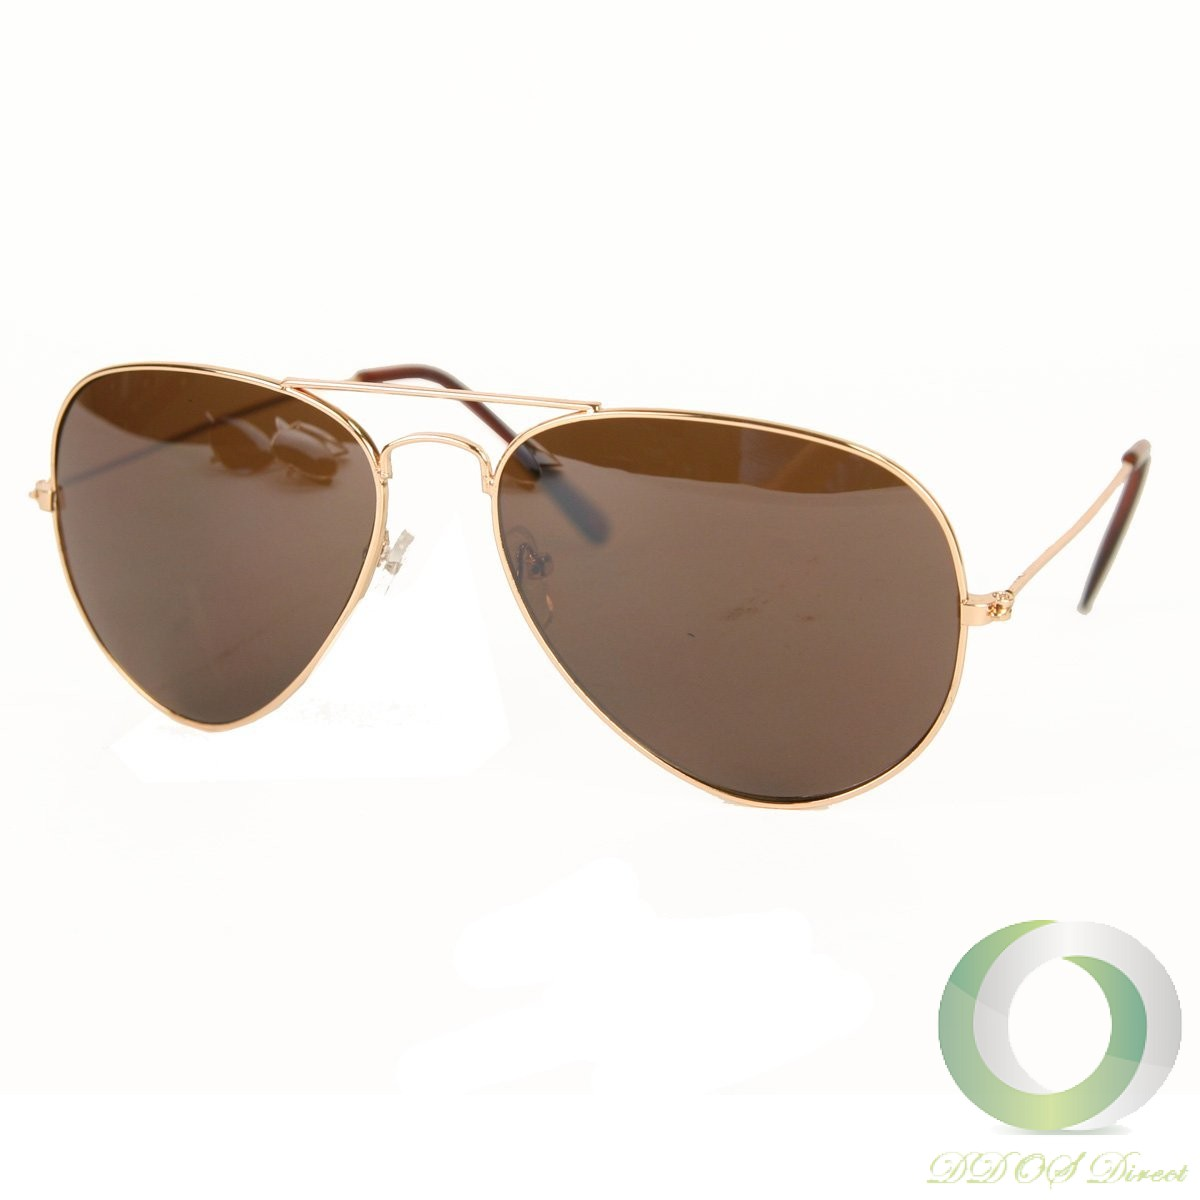 Gold Frame Aviator Glasses : UB Classic Aviator Sunglasses: Gold Frame with Brown ...